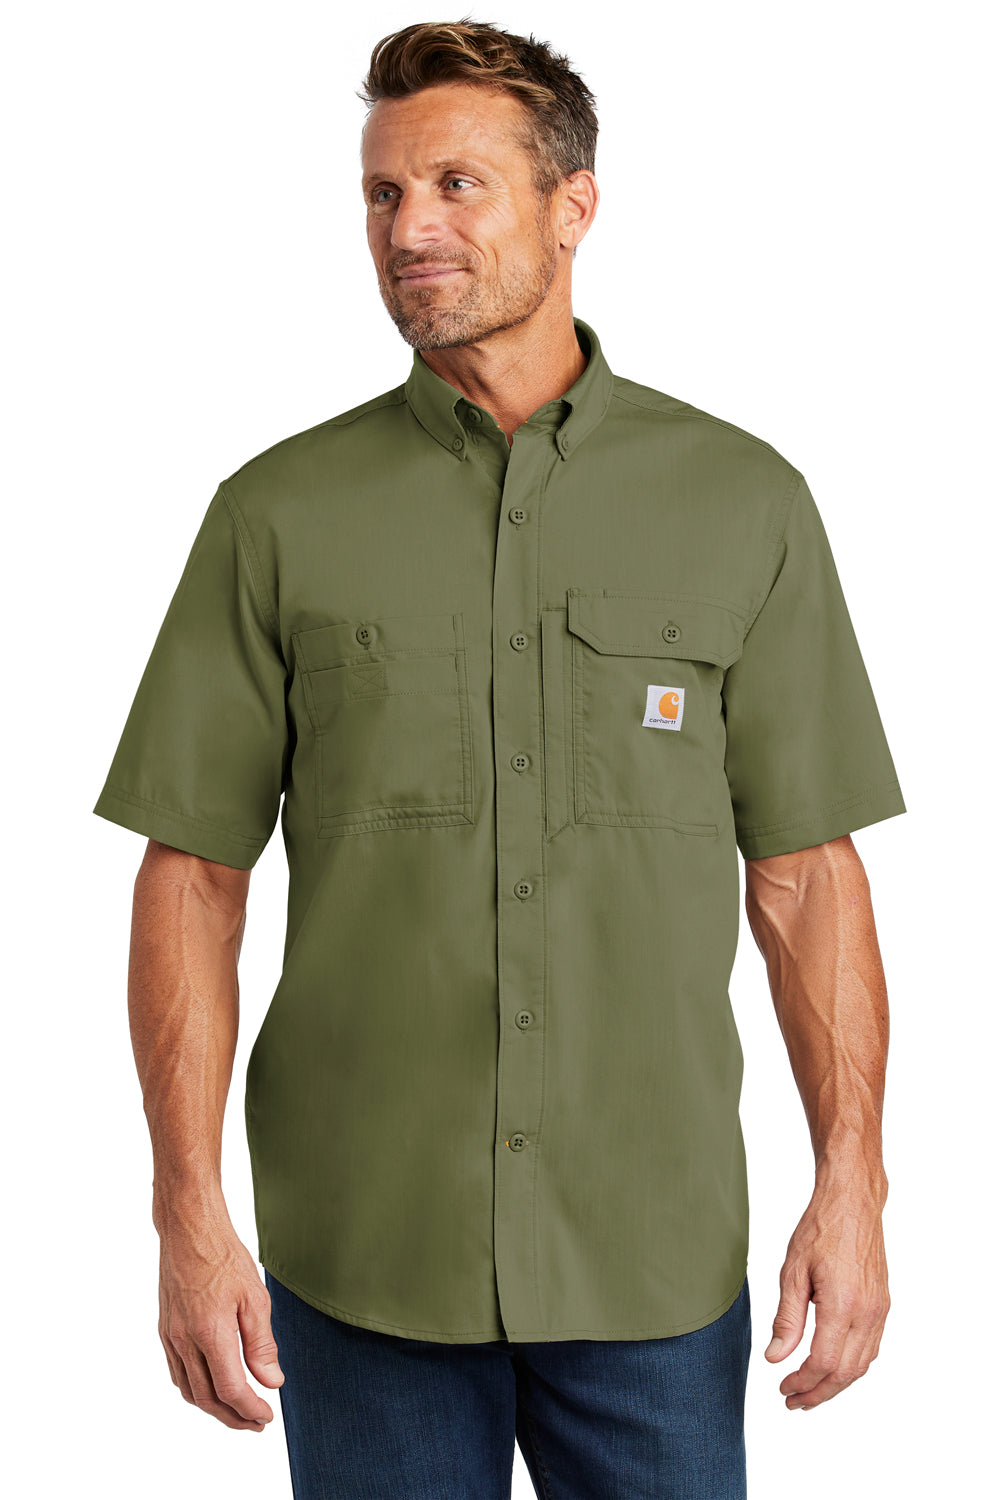 Carhartt CT102417 Mens Force Ridgefield Moisture Wicking Short Sleeve Button Down Shirt w/ Double Pockets Olive Green Front